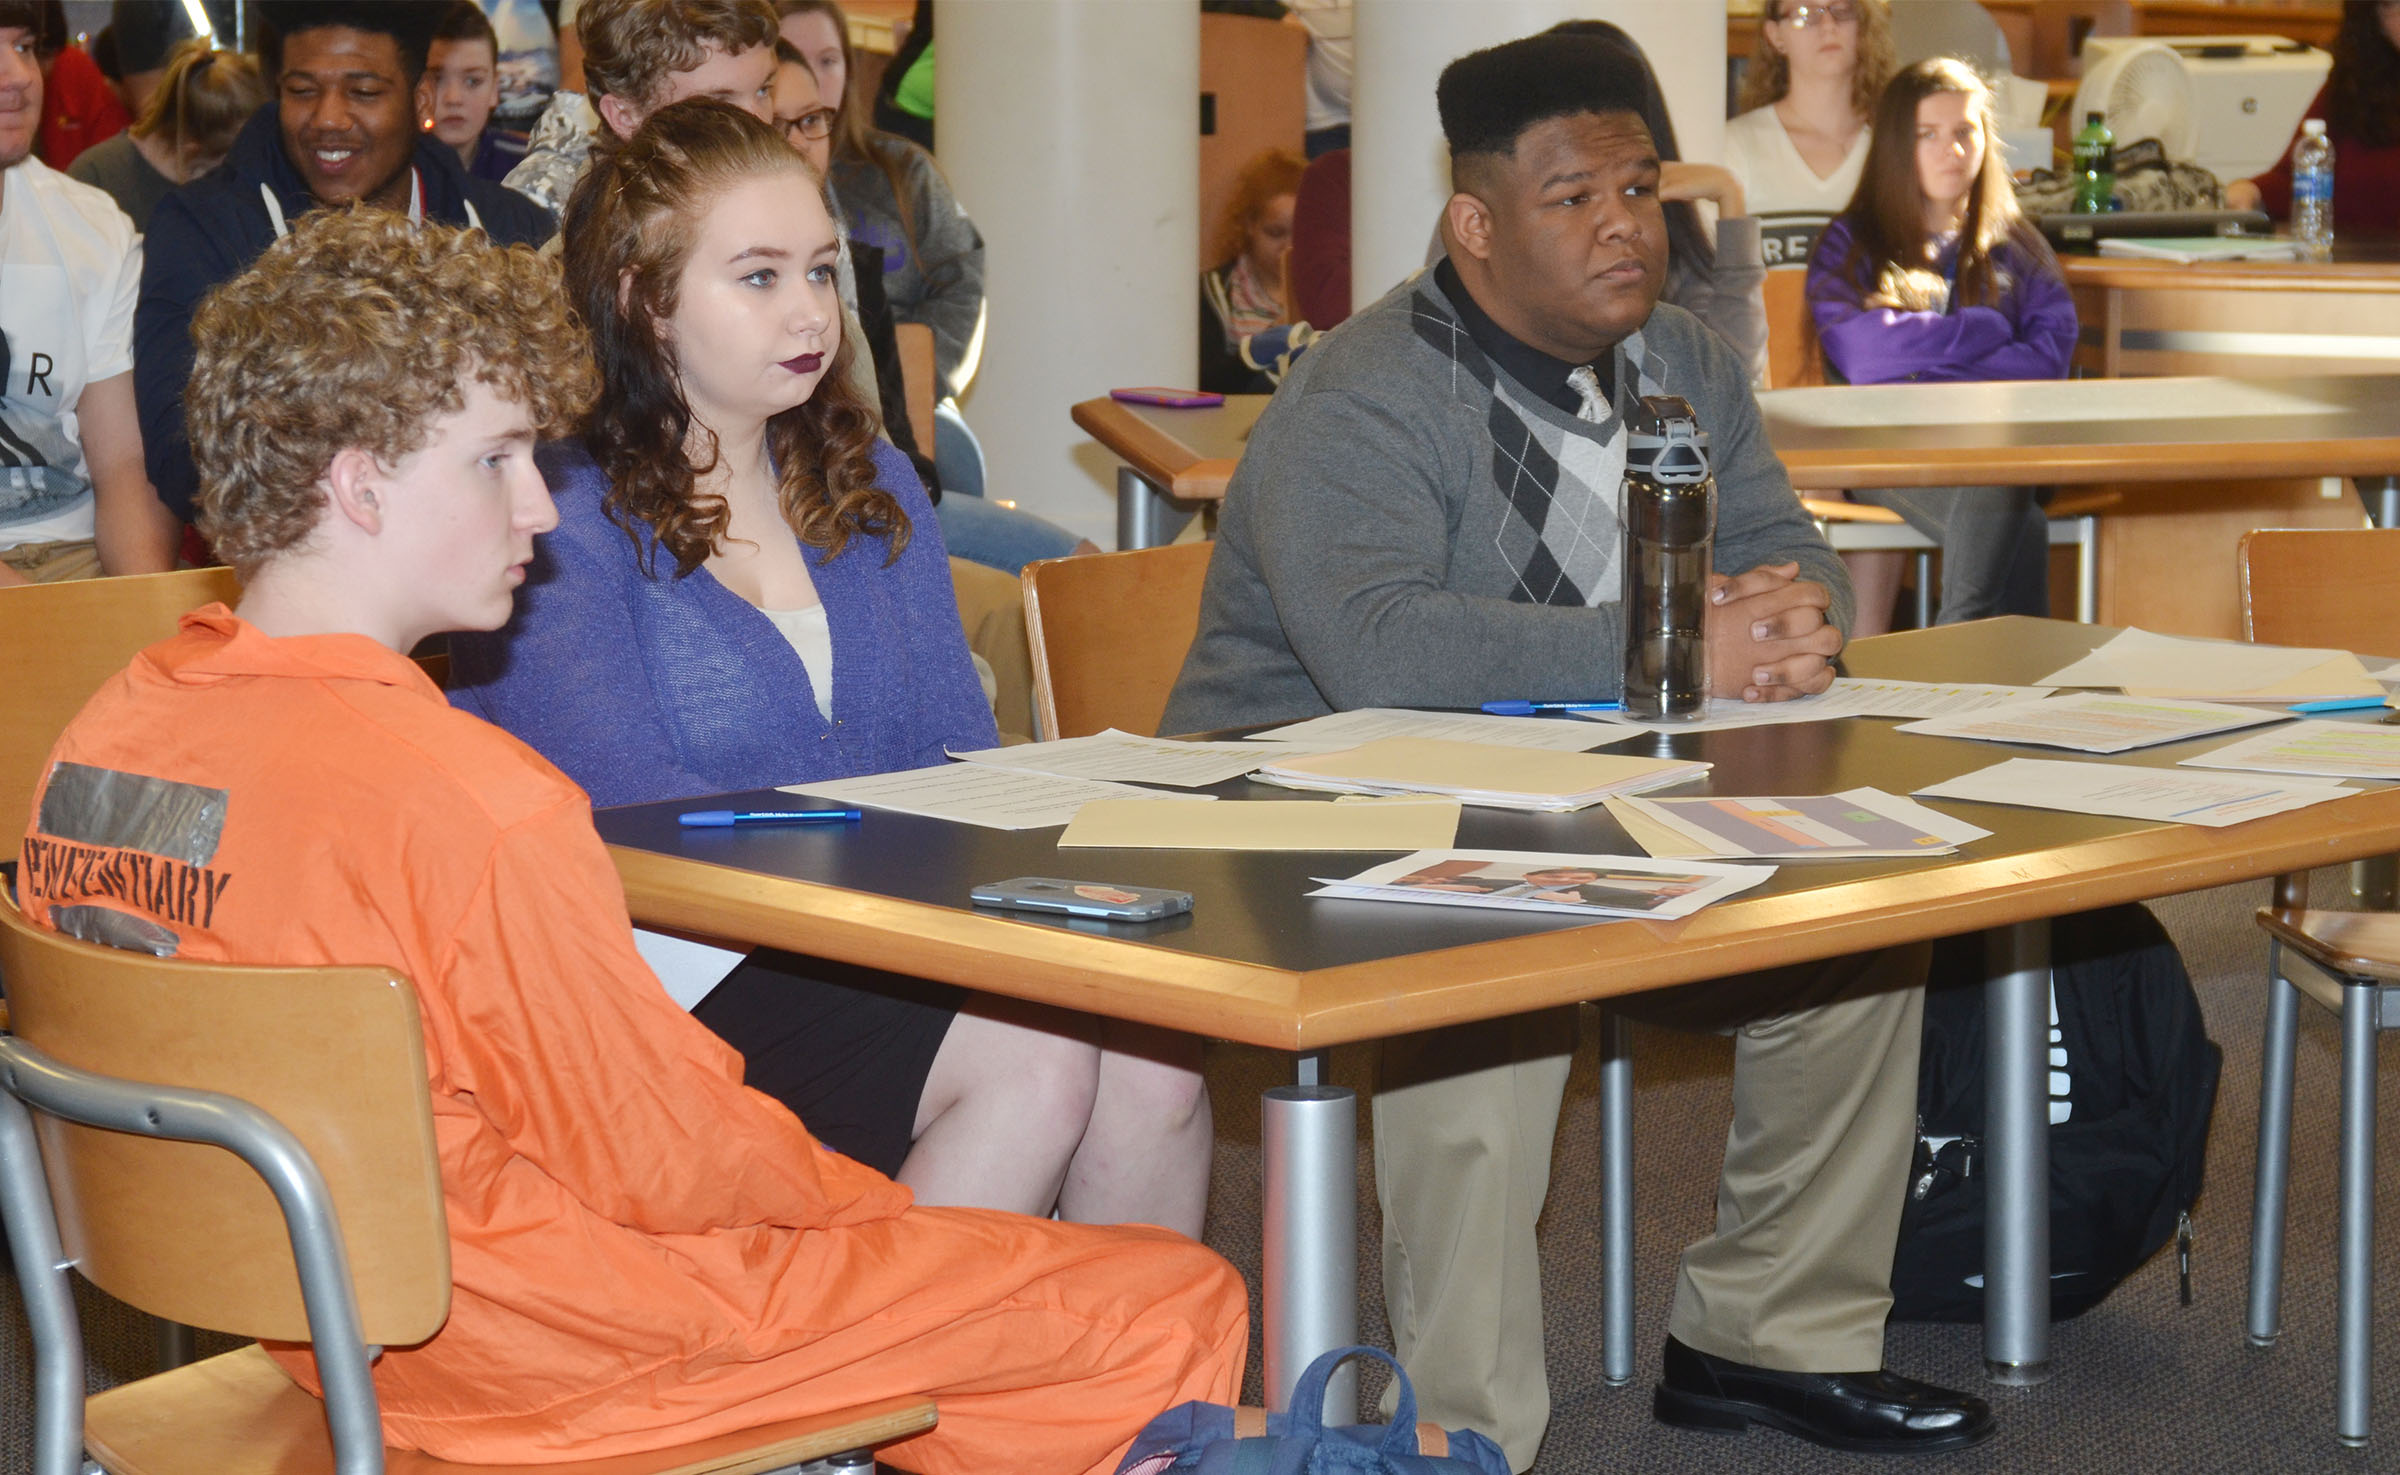 CHS sophomore Jackson Hinton, at left, was on trial for murdering his fiance. At right are his defense attorneys, sophomores Leslie McKenzie and Jeremiah Jackson.